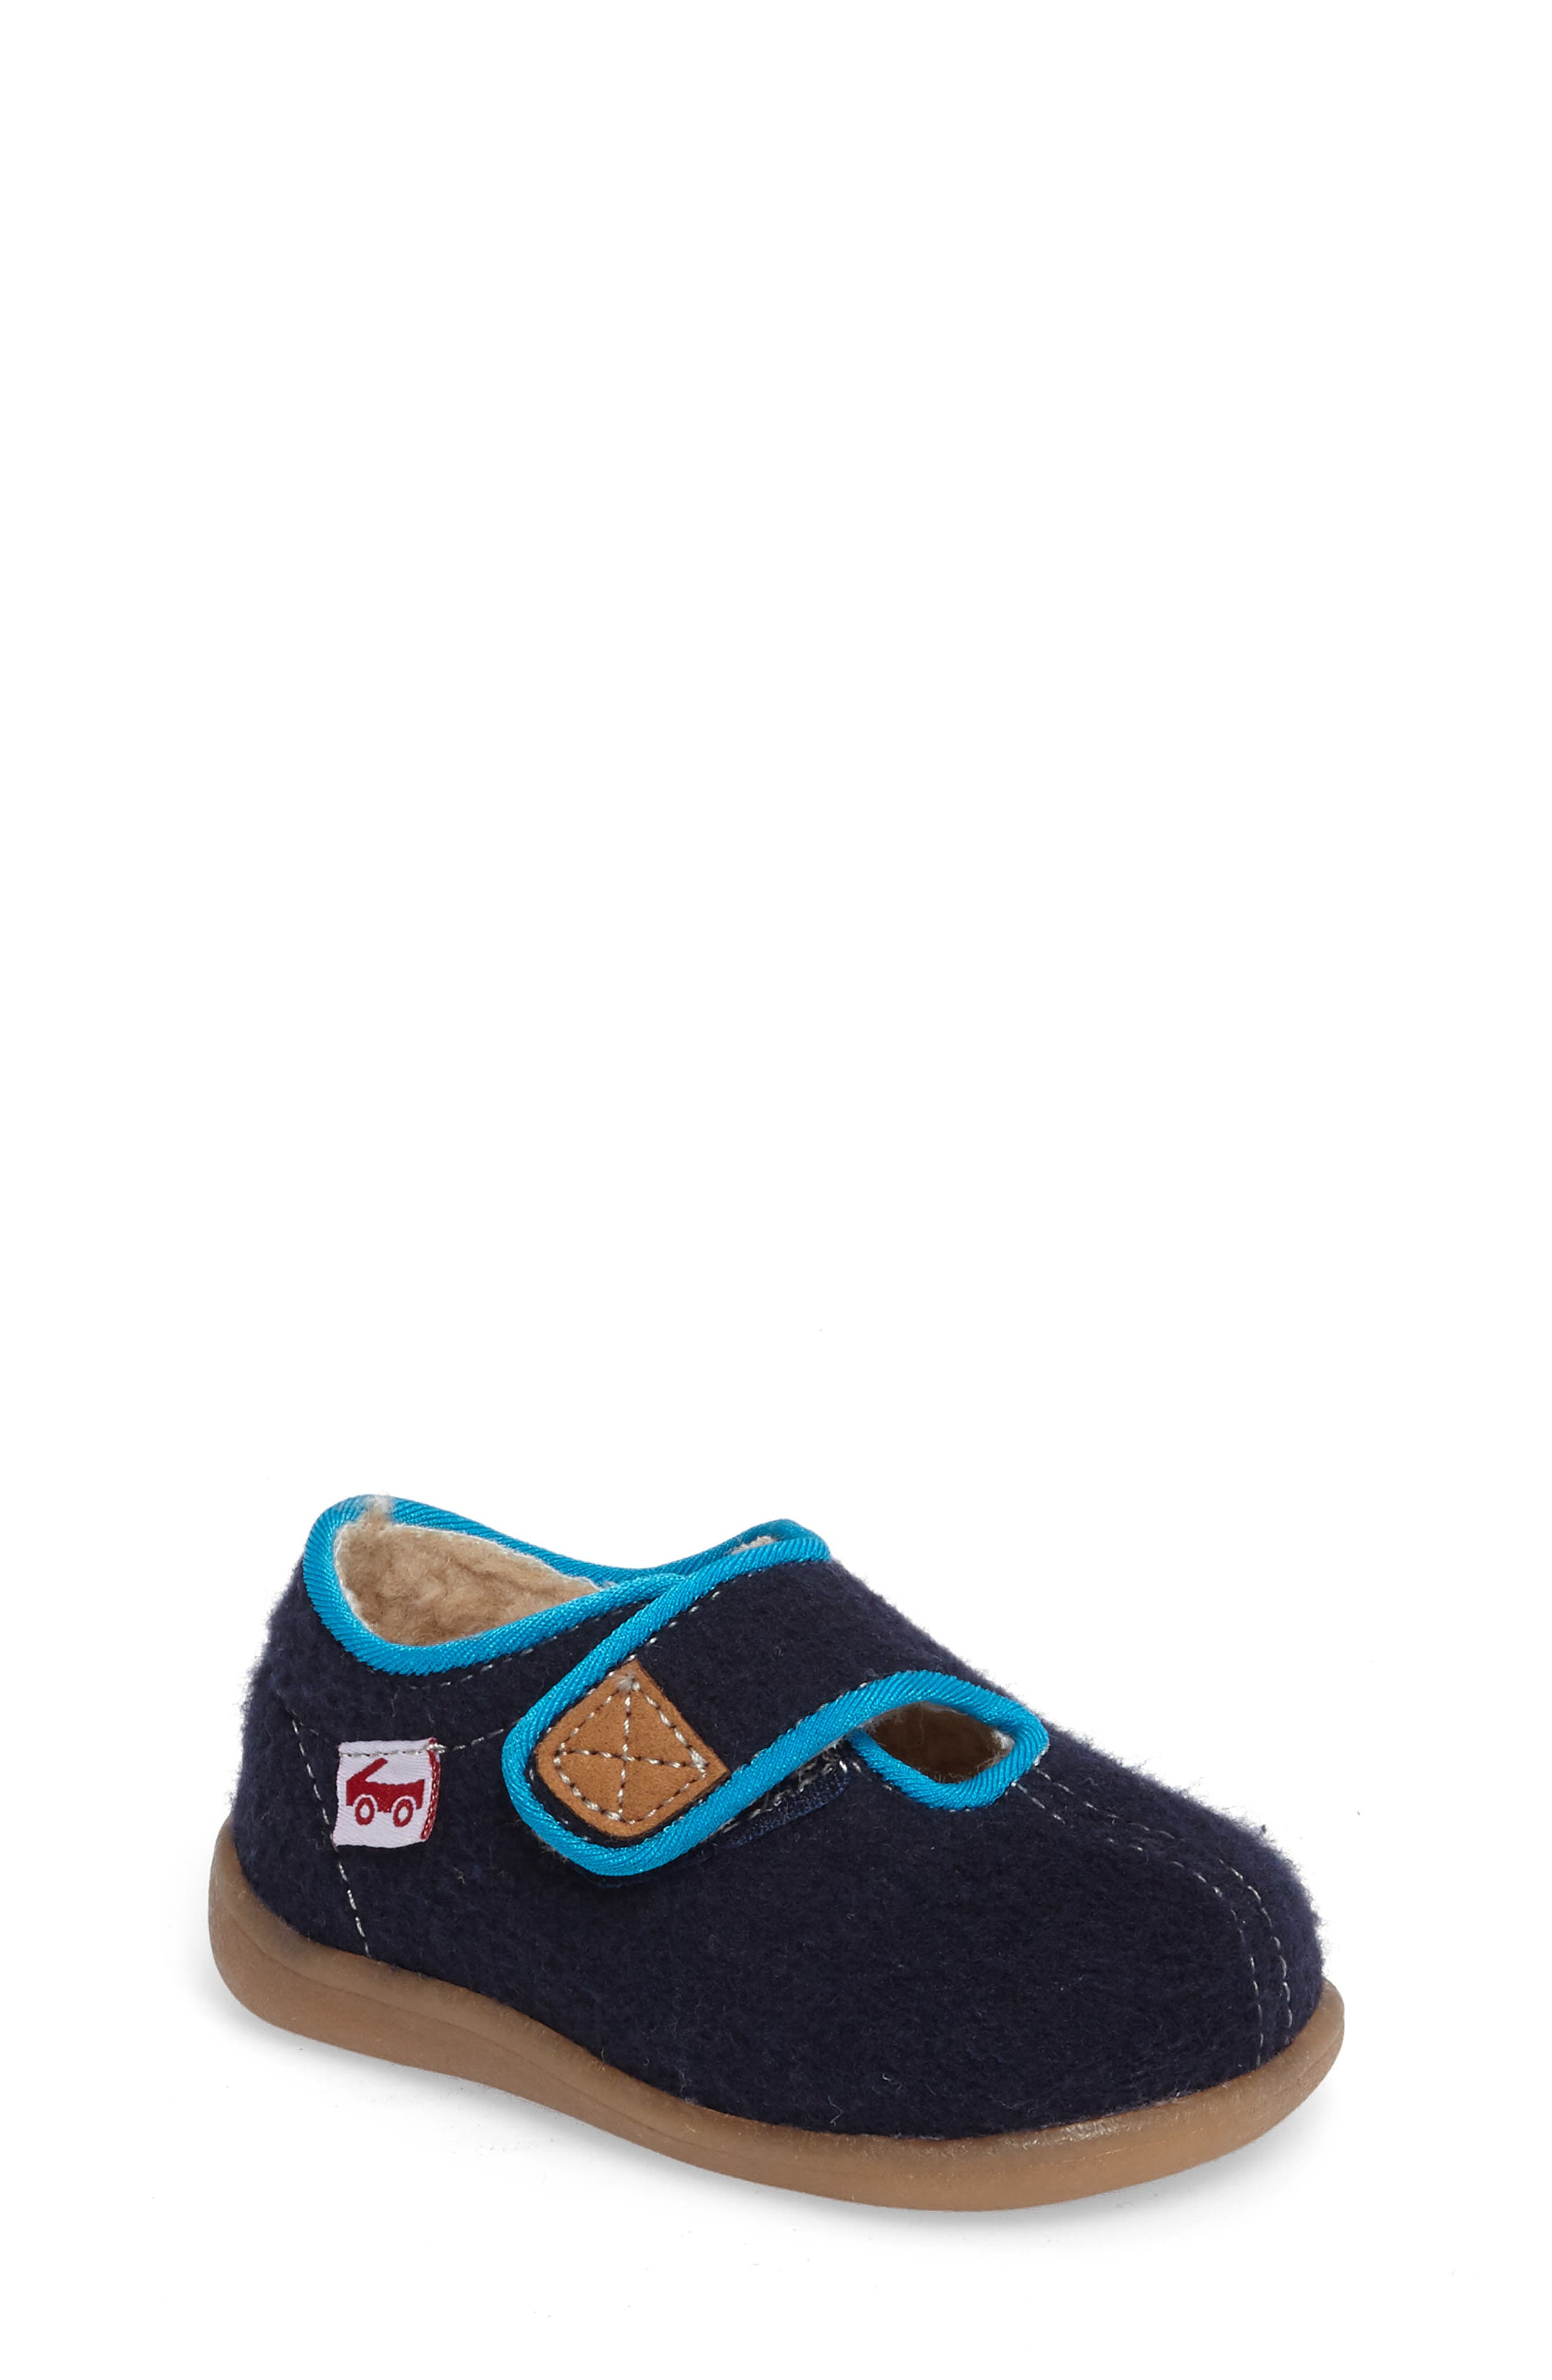 Cruz Slipper,                         Main,                         color, Navy